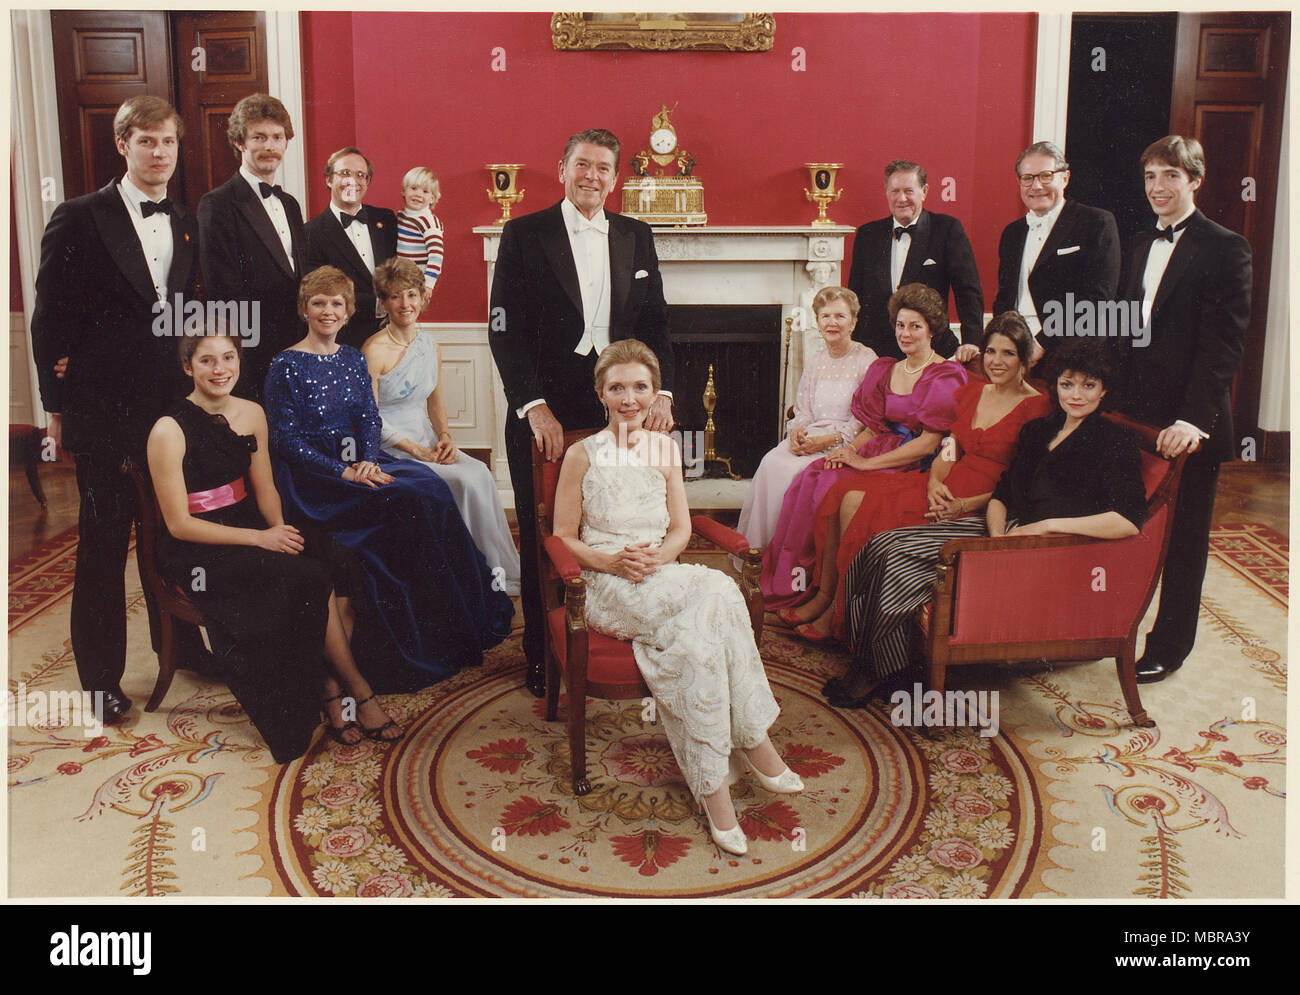 1981 Presidential Inaugural Family Photo:(standing from left to right) Geoffrey Davis, Dennis Revell, Michael Reagan, Cameron Reagan, President Reagan, Neil Reagan, Dr. Richard David, Ron Junior. (sitting from left to right) Anne Davis, Maureen Reagan, Colleen Reagan, Mrs. Reagan, Bess Reagan, Patricia Davis, Patti Davis, Doria Reagan - Stock Image